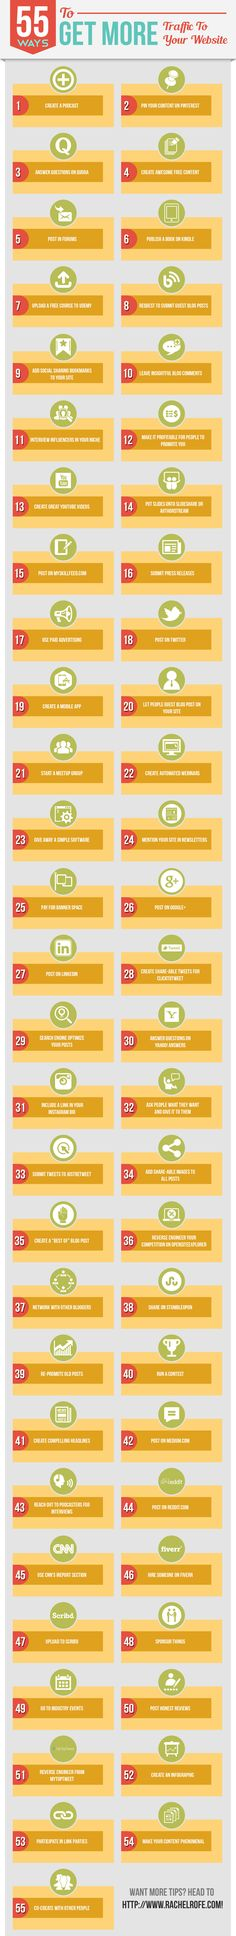 55 Quick and Easy Ways to Massively Increase Website Traffic posted in Content Marketing Email Marketing Infographics Marketing SEO Social Media by Mark Ford Marketing Services, Content Marketing, Internet Marketing, Affiliate Marketing, Online Marketing, Social Media Marketing, Digital Marketing, Business Marketing, Inbound Marketing